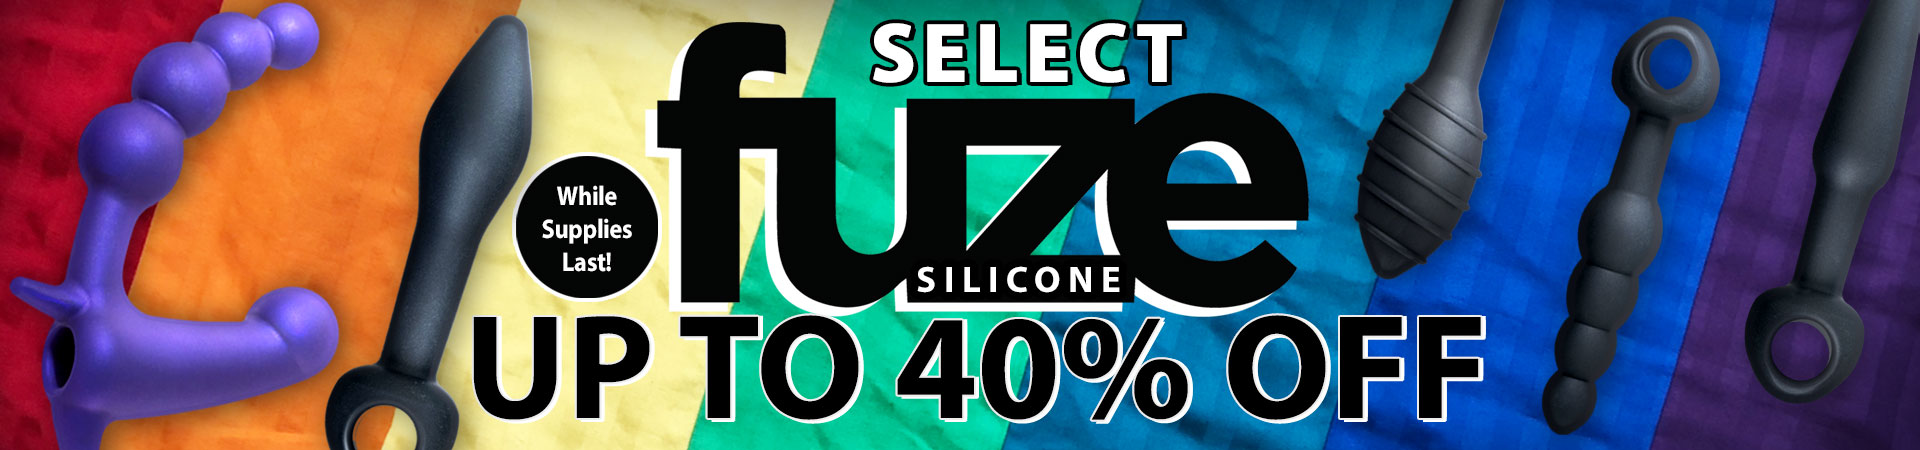 Big Discounts on Fuze Silicone! Up to 40% Off Select Items - While Supplies Last!